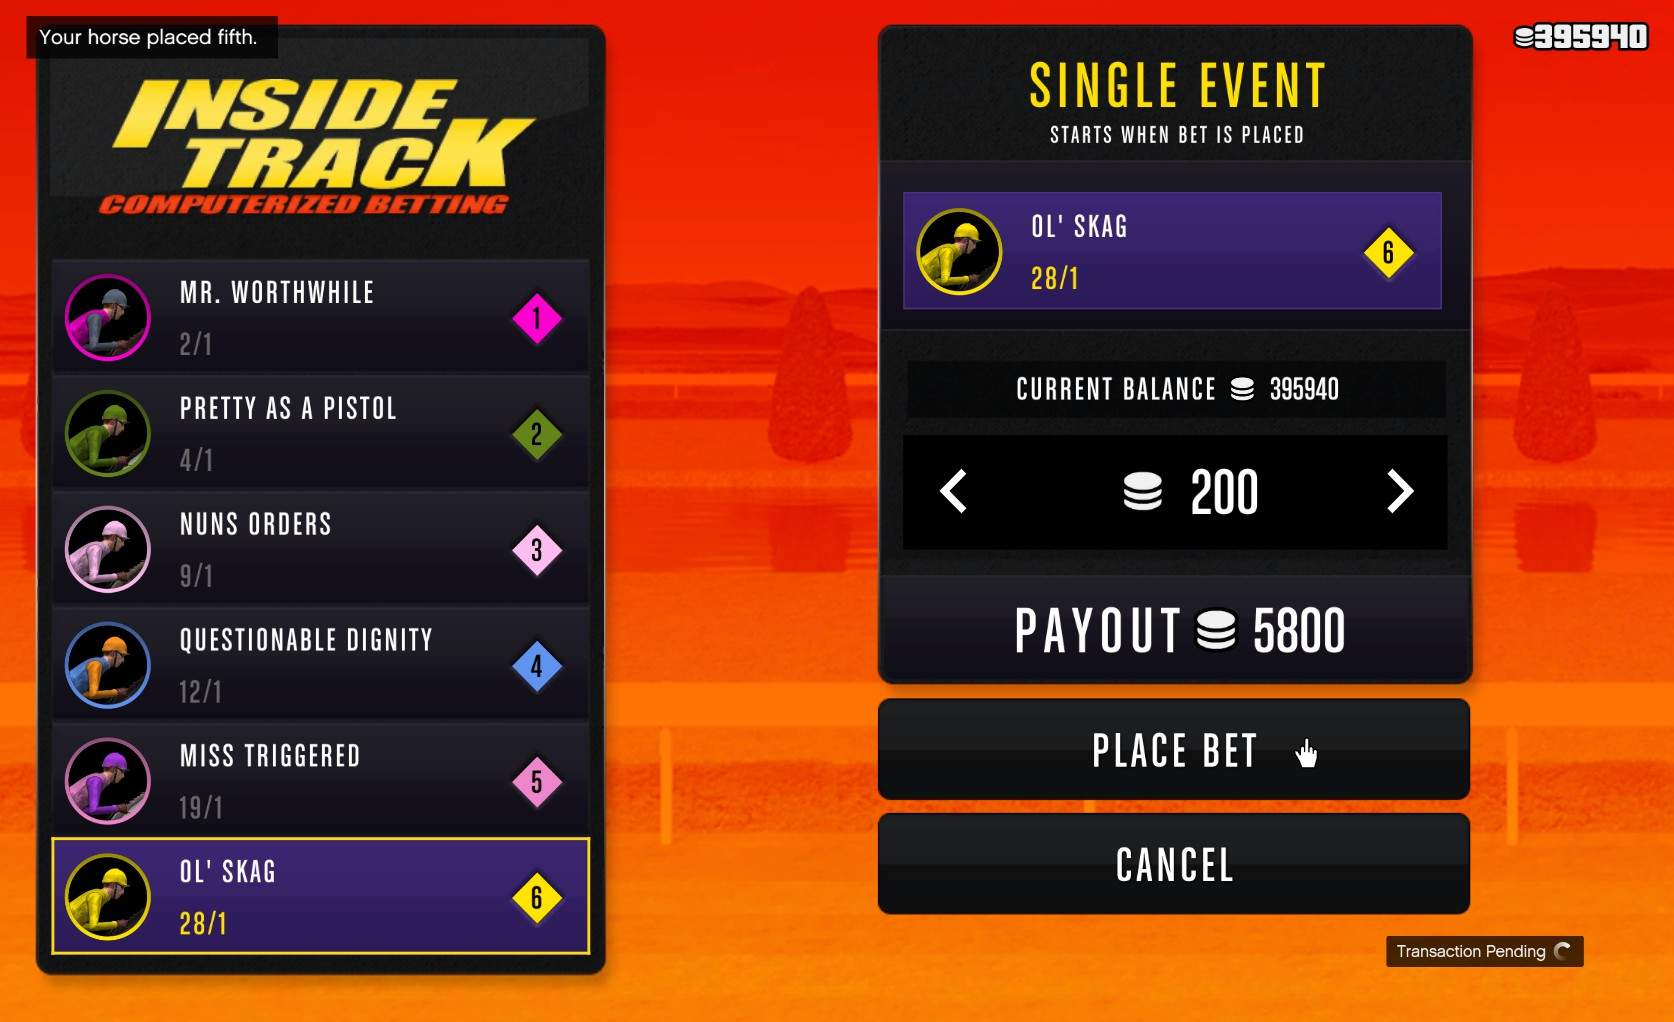 Fixed odds betting terminals cheats for gta twin bet 75 sport